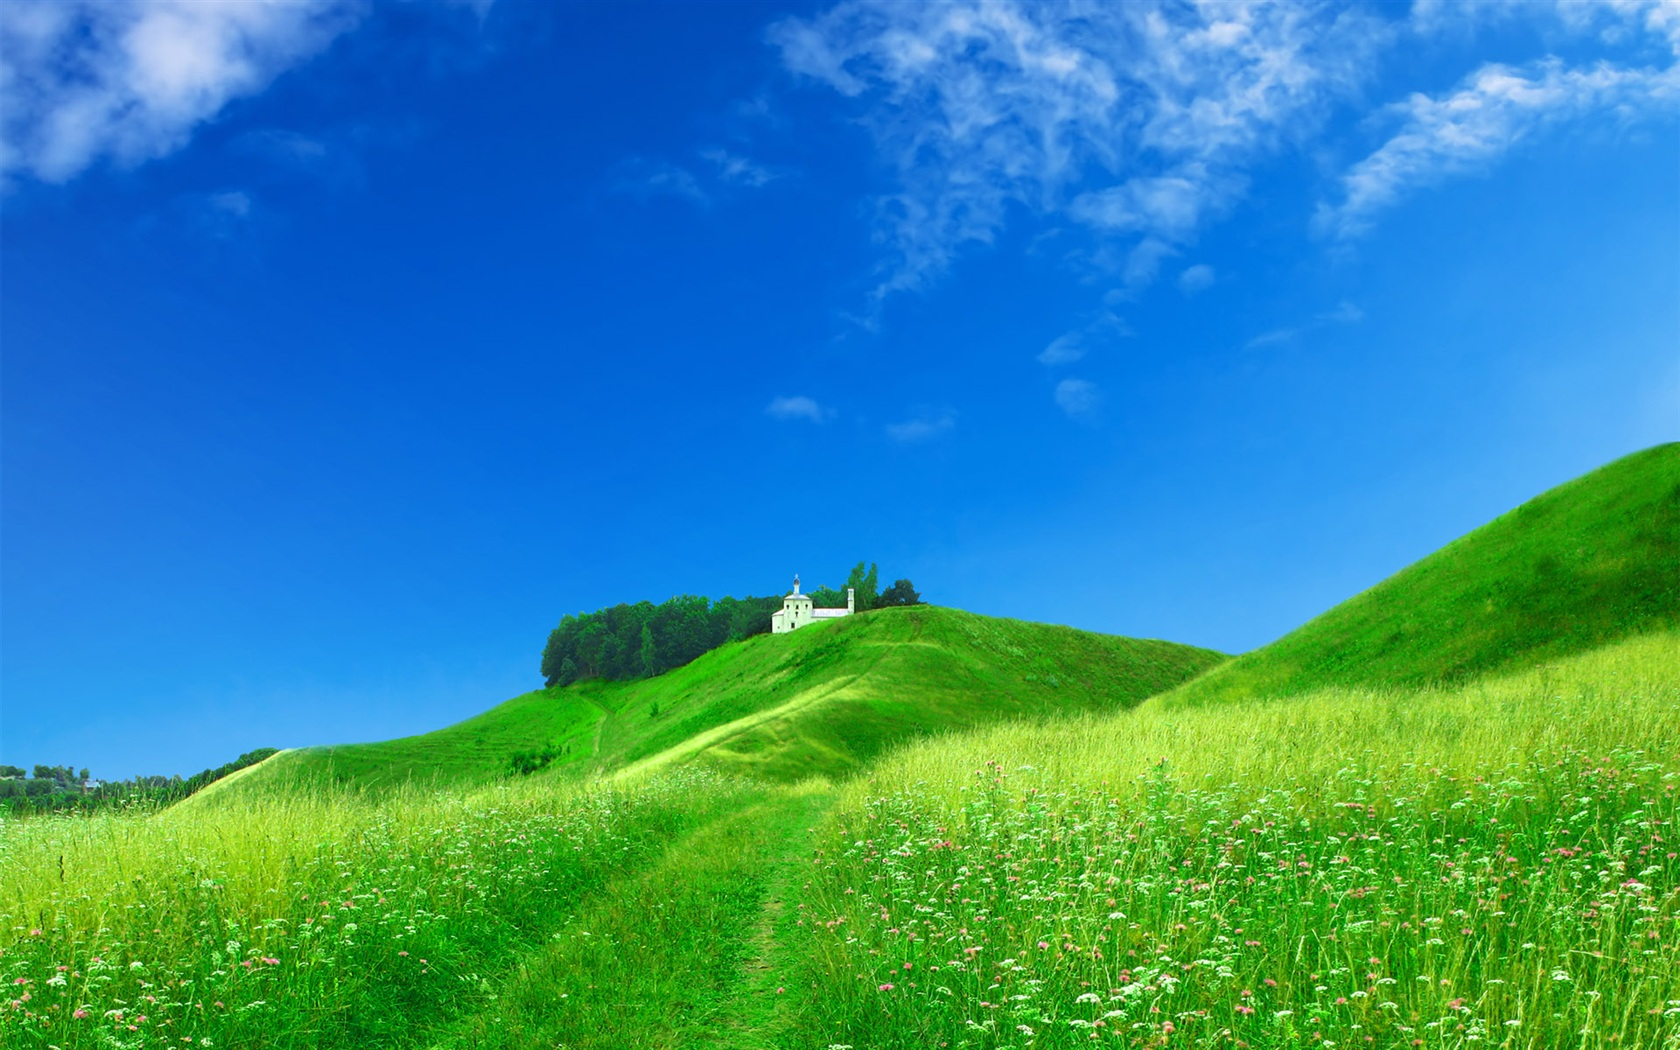 Dream home on the green hillside wallpaper - 1680x1050